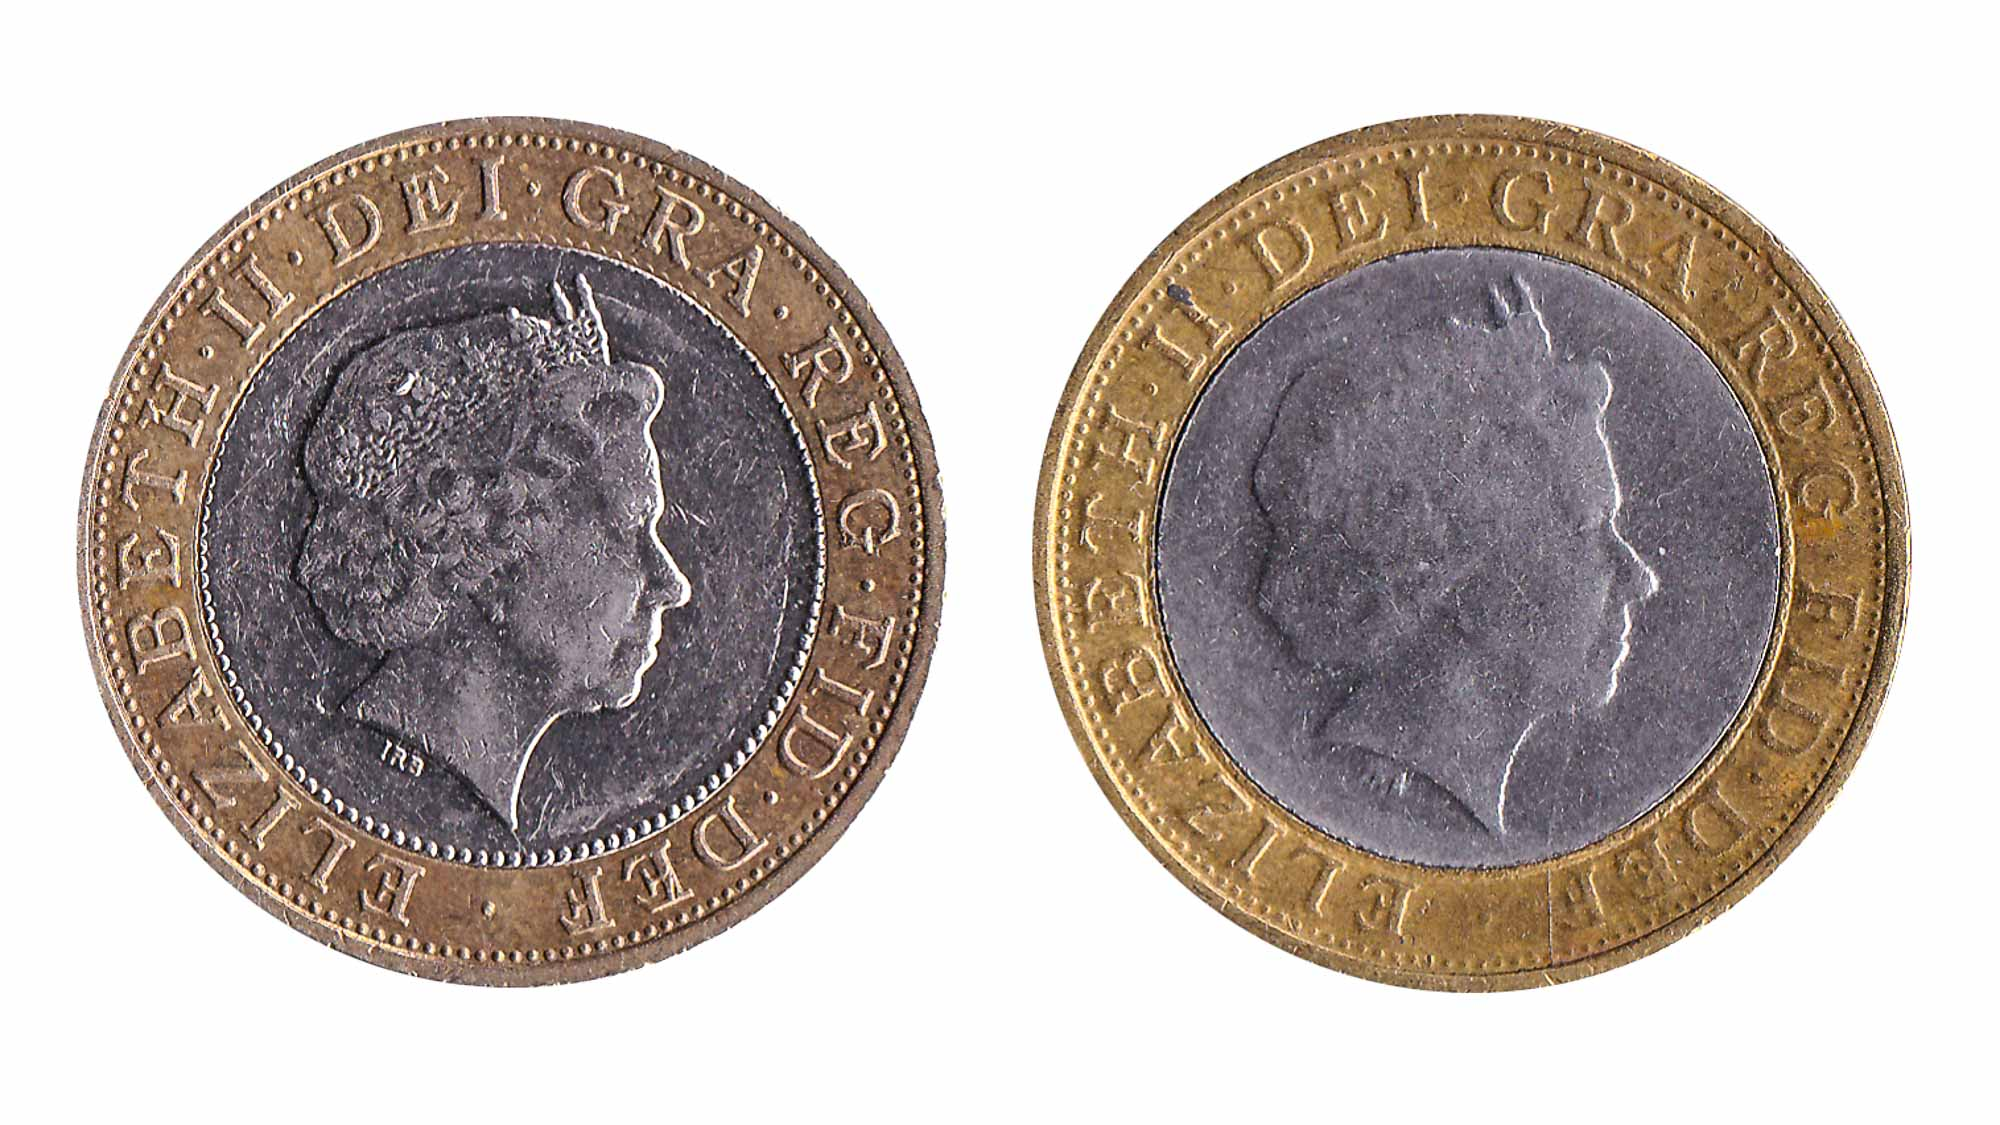 genuine versus fake 2 pound coin